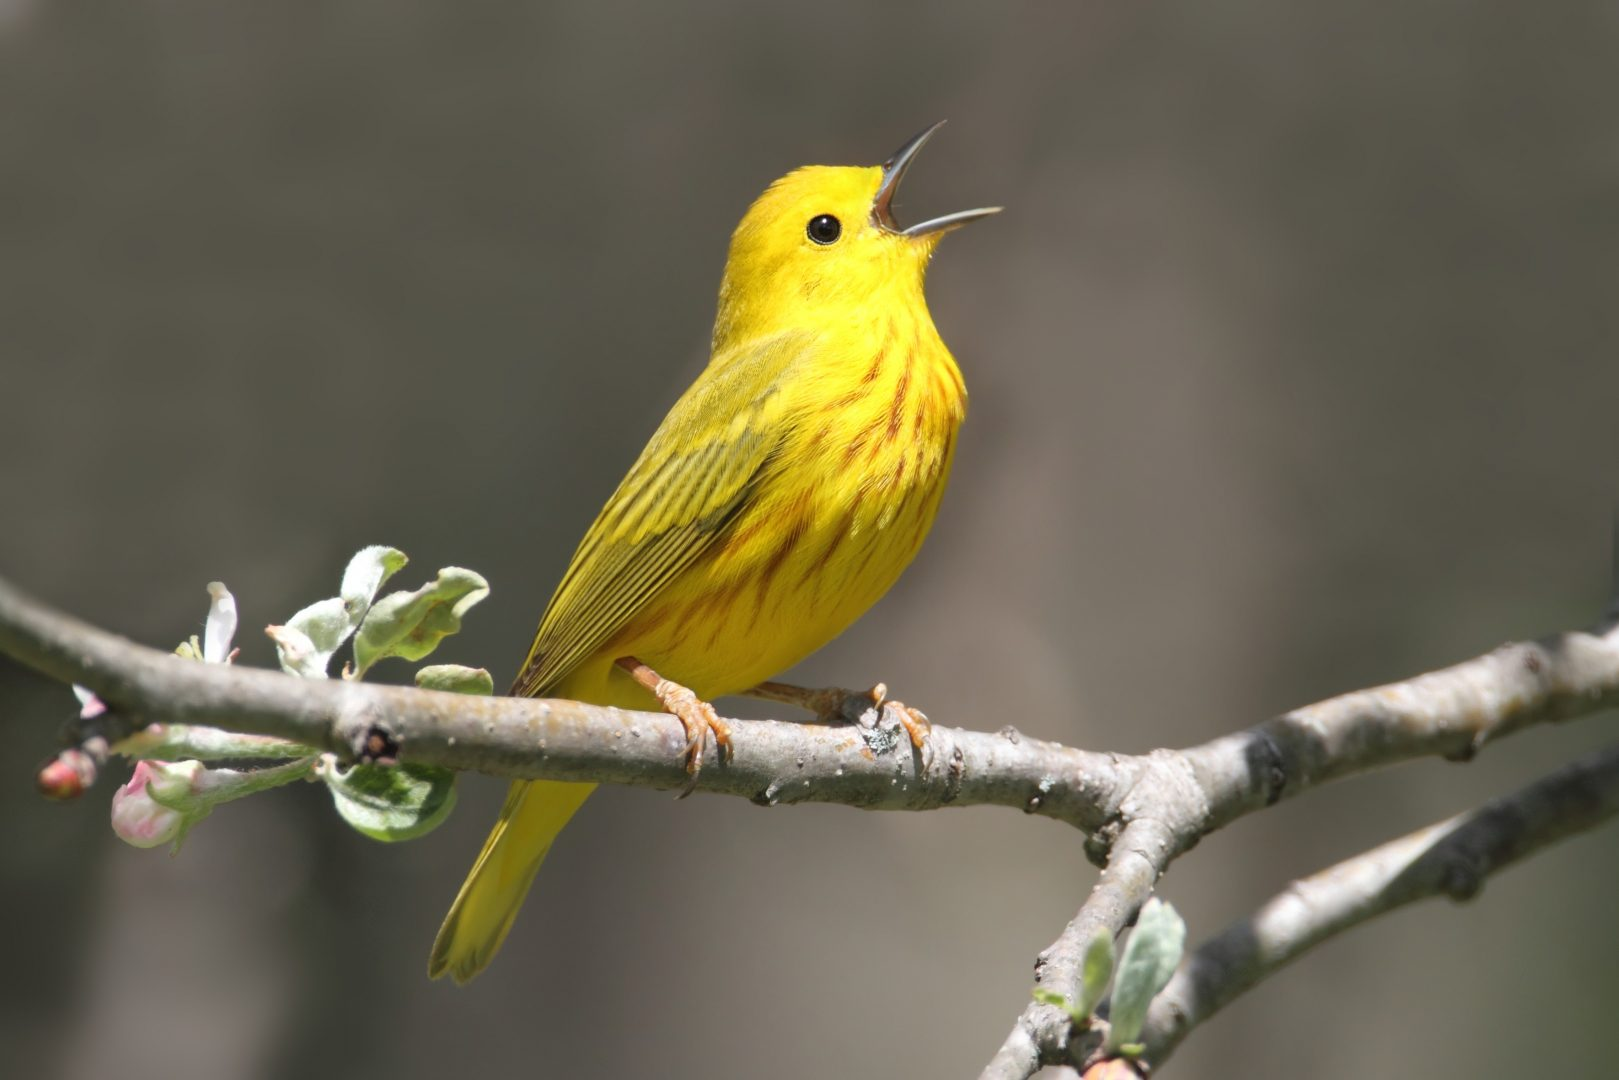 singing yellow warbler on branch